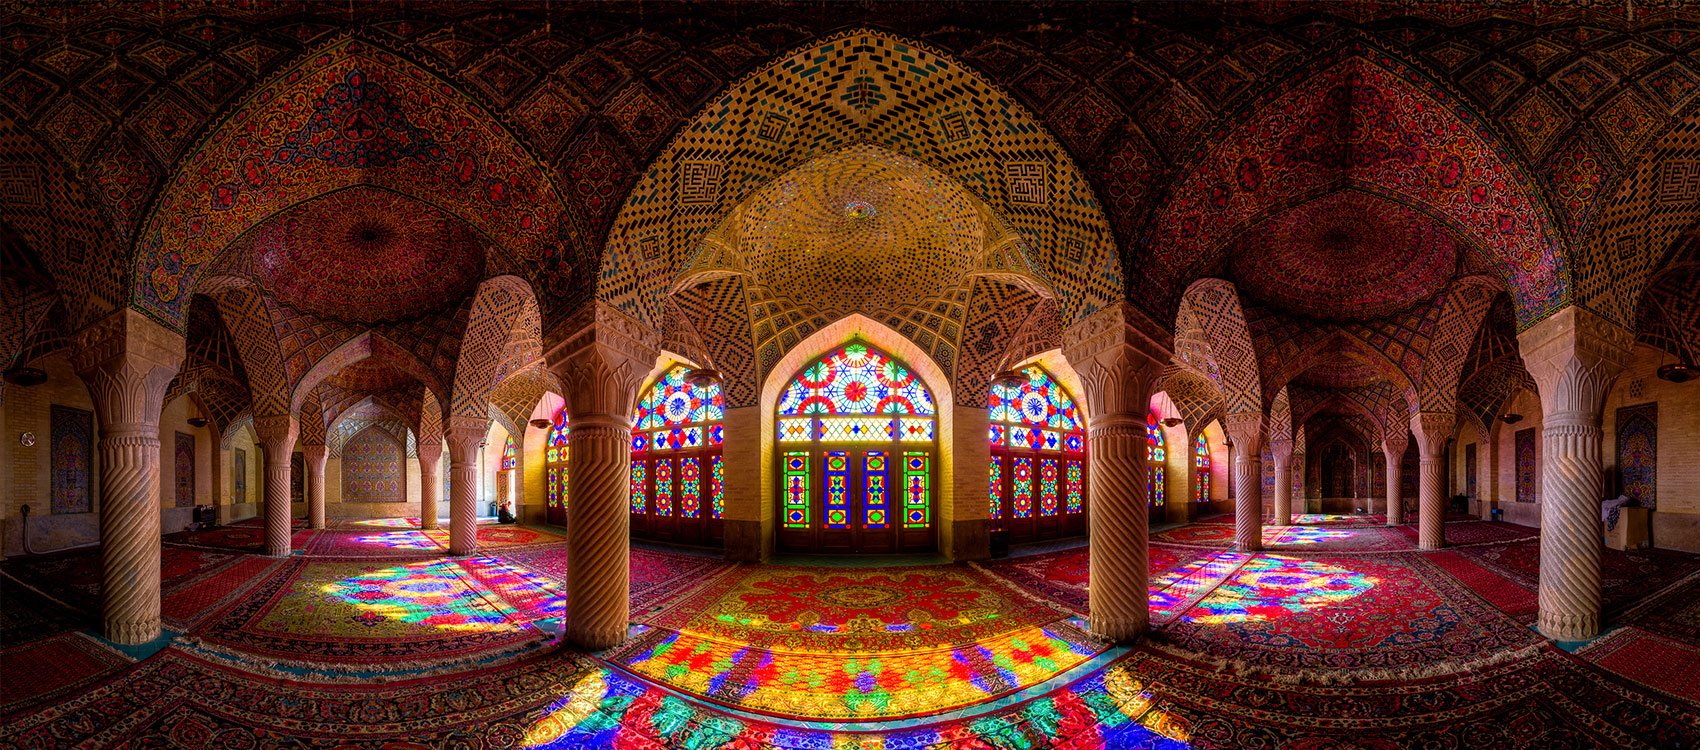 TOURS TO IRAN,SHIRAZ TOUR,Iran Welcomes you,discover Shiraz,tours to Iran